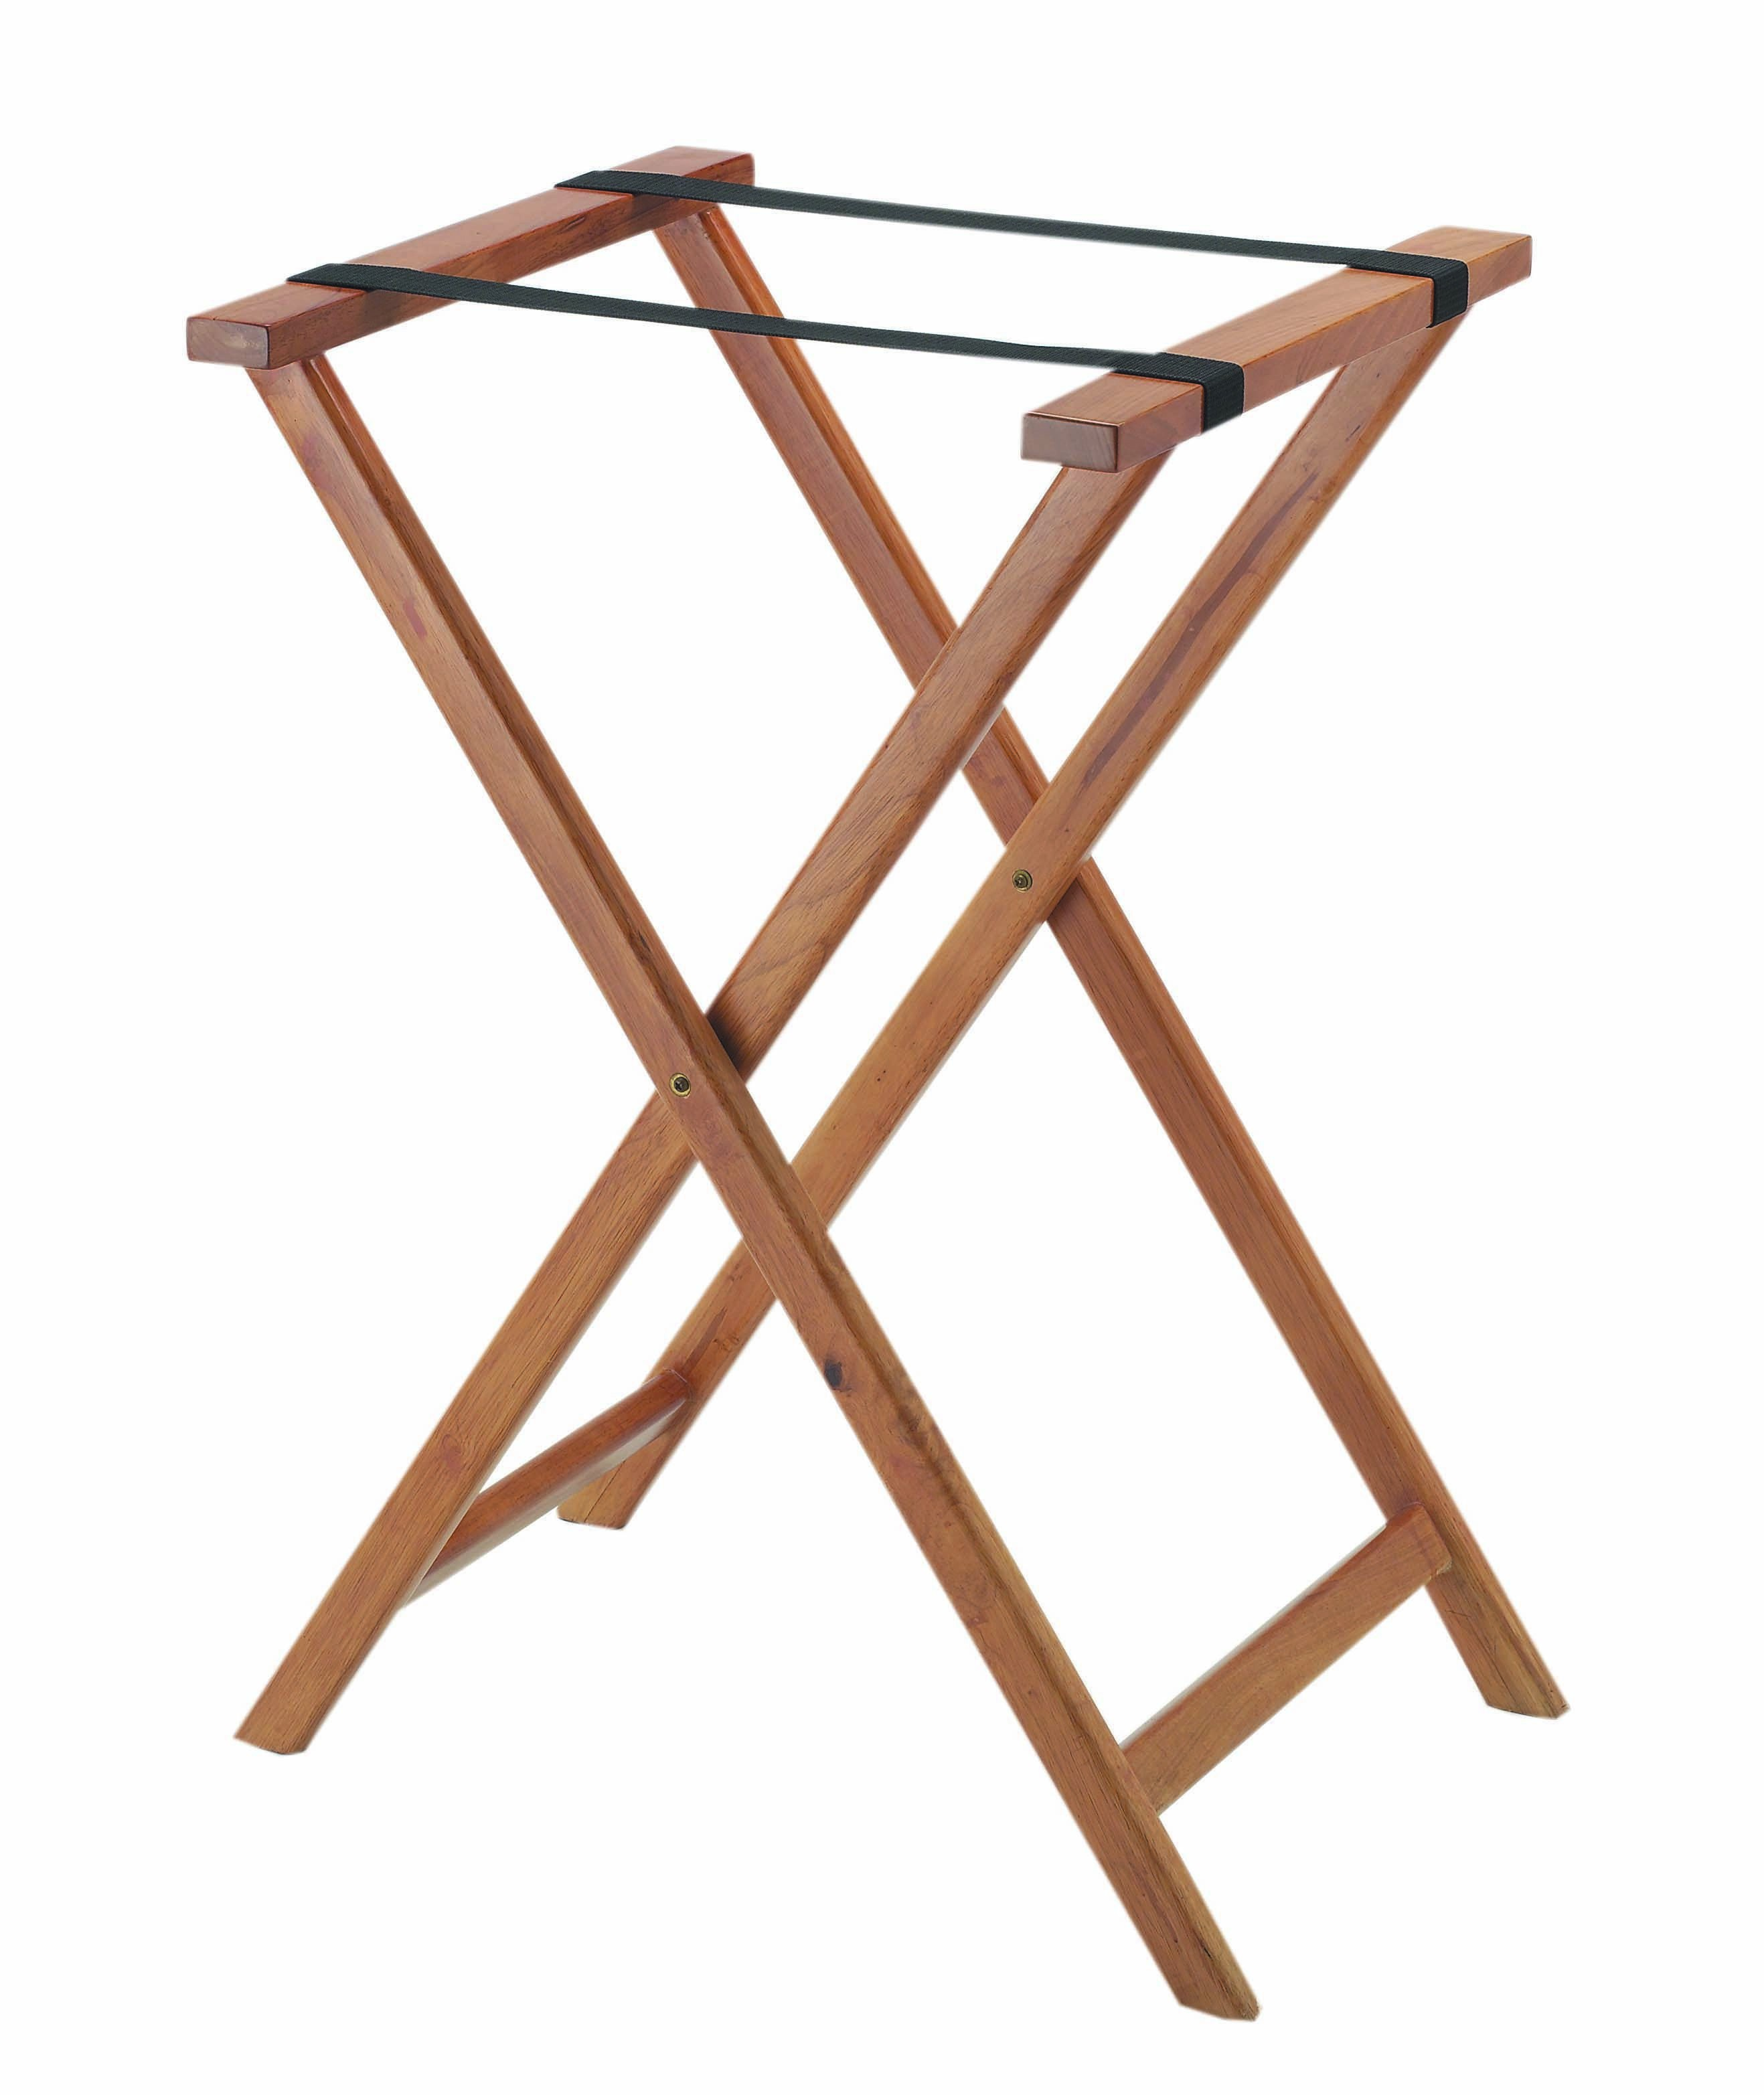 Aarco Products TS-2 Medium Wood Tray Stand